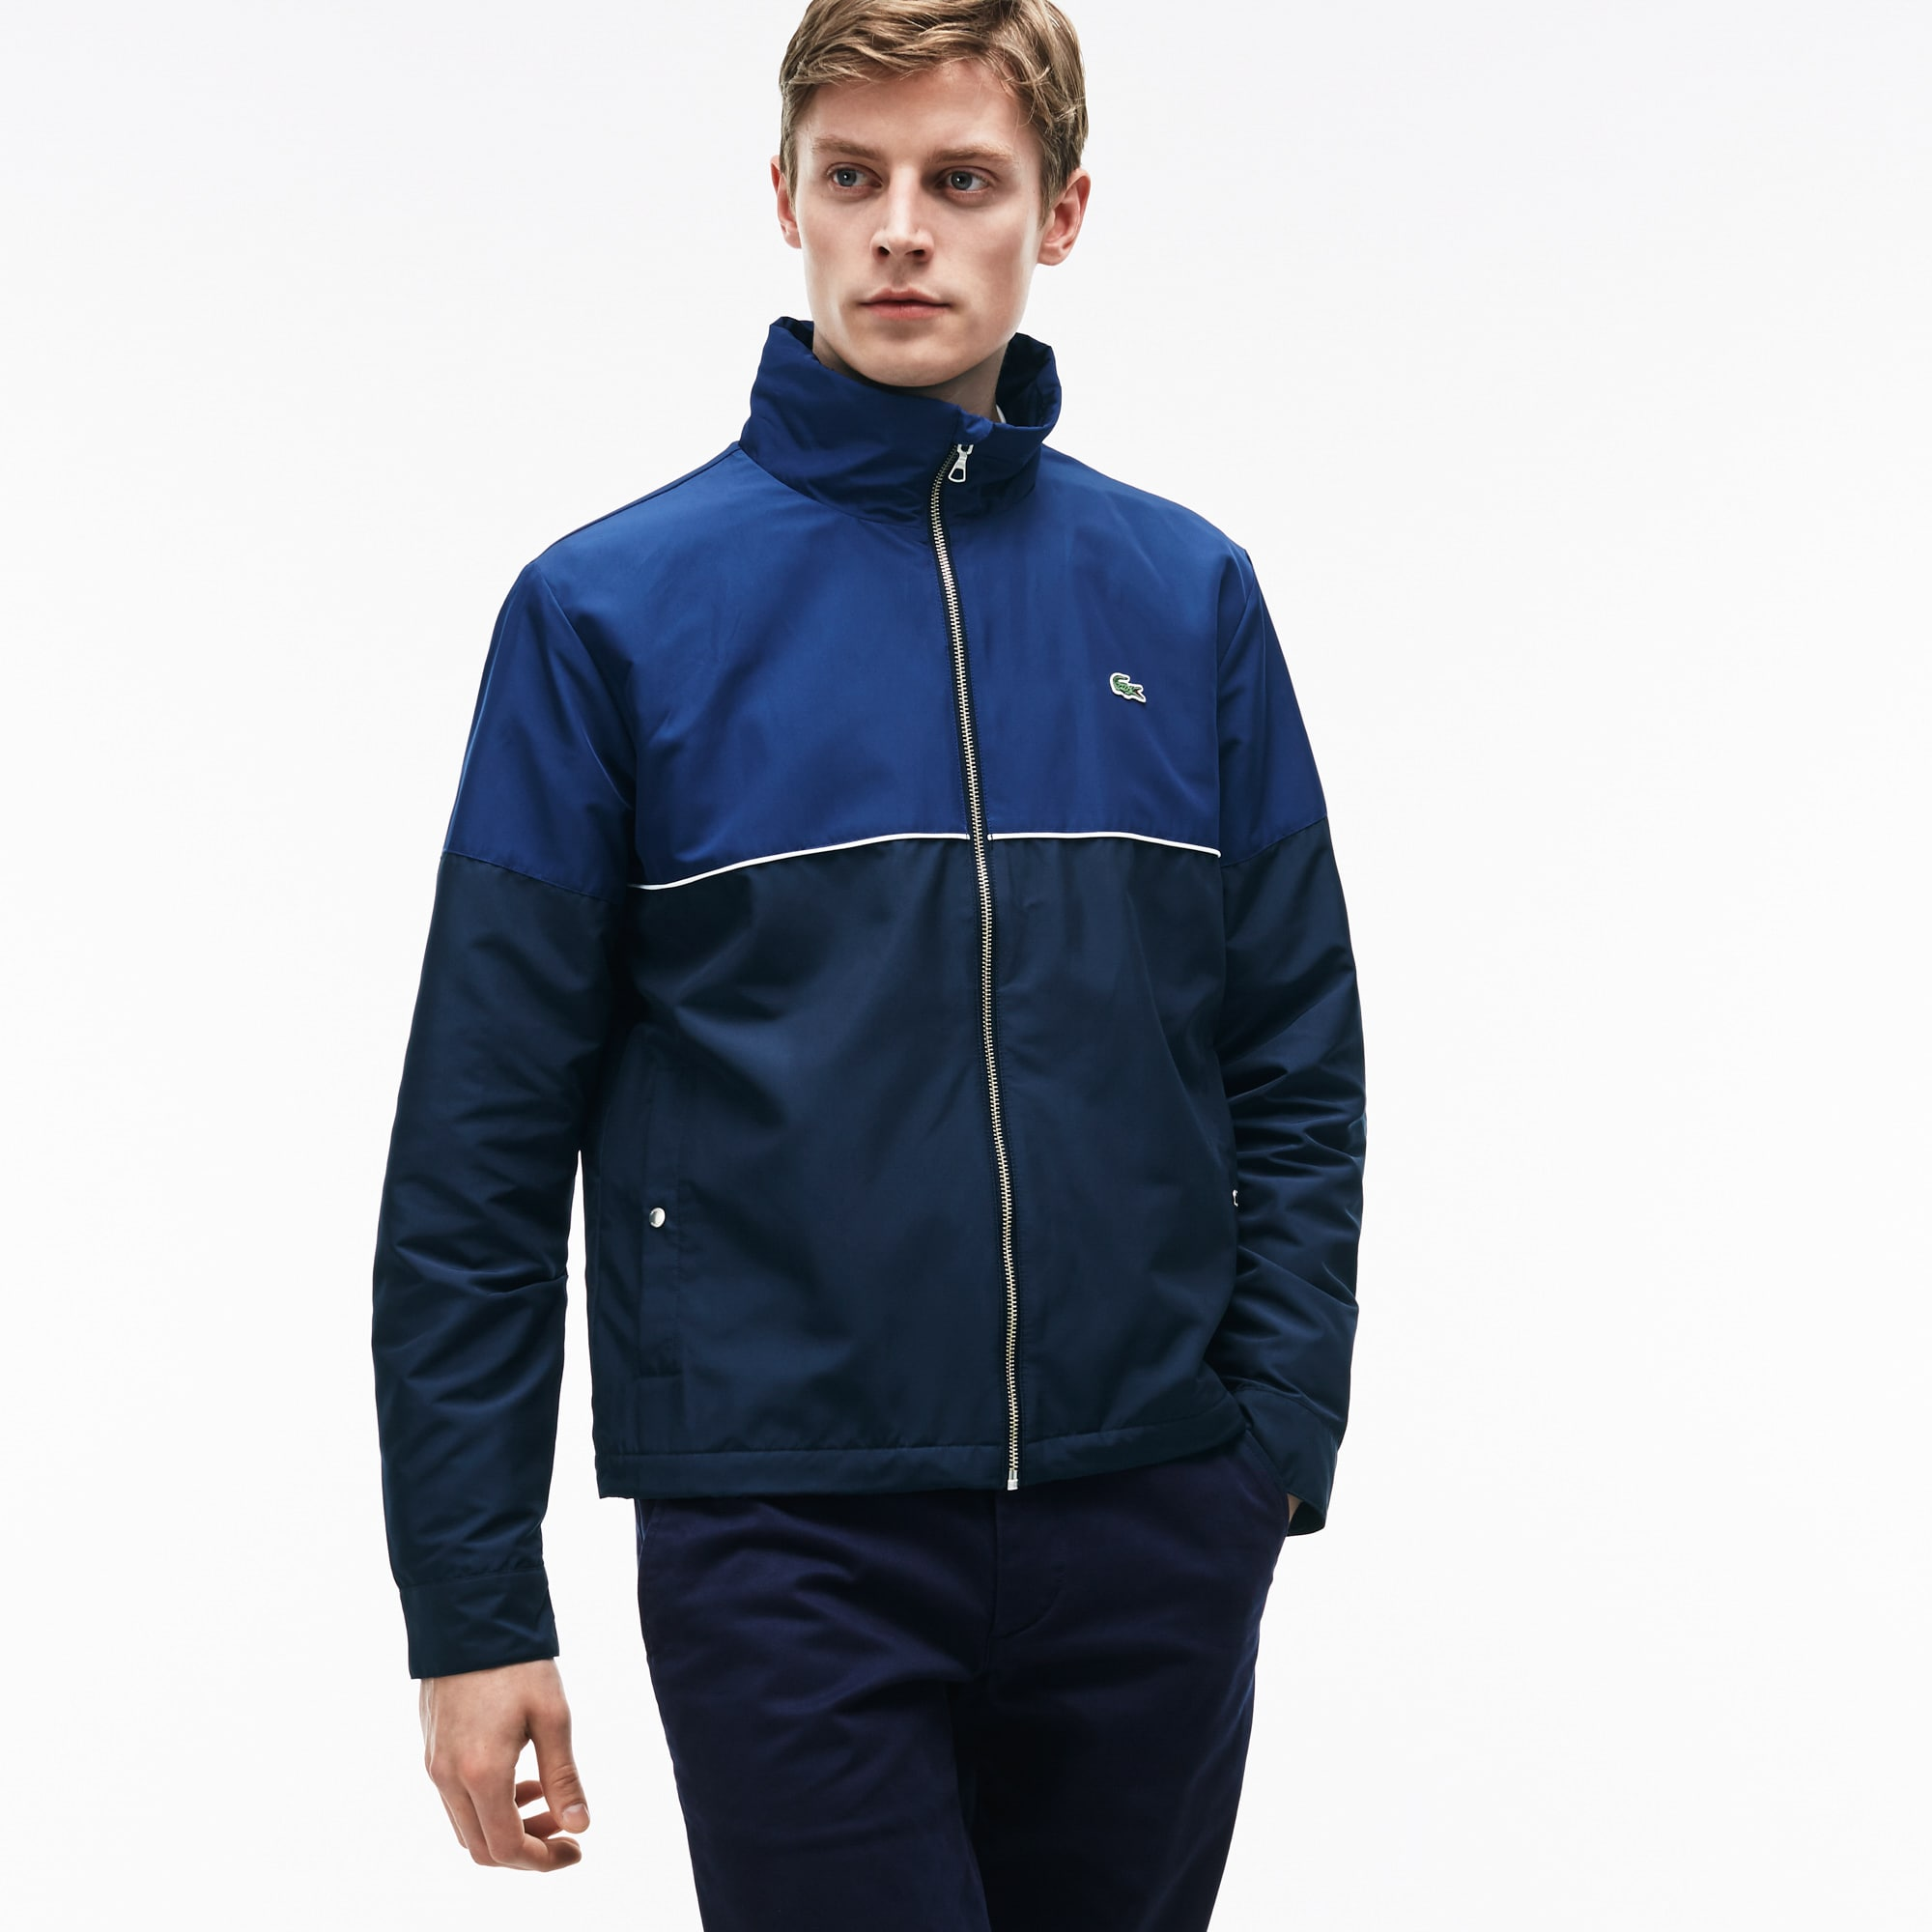 Men's Hooded Zippered Jacket in Unicolor Nylon and Contrasting Accents